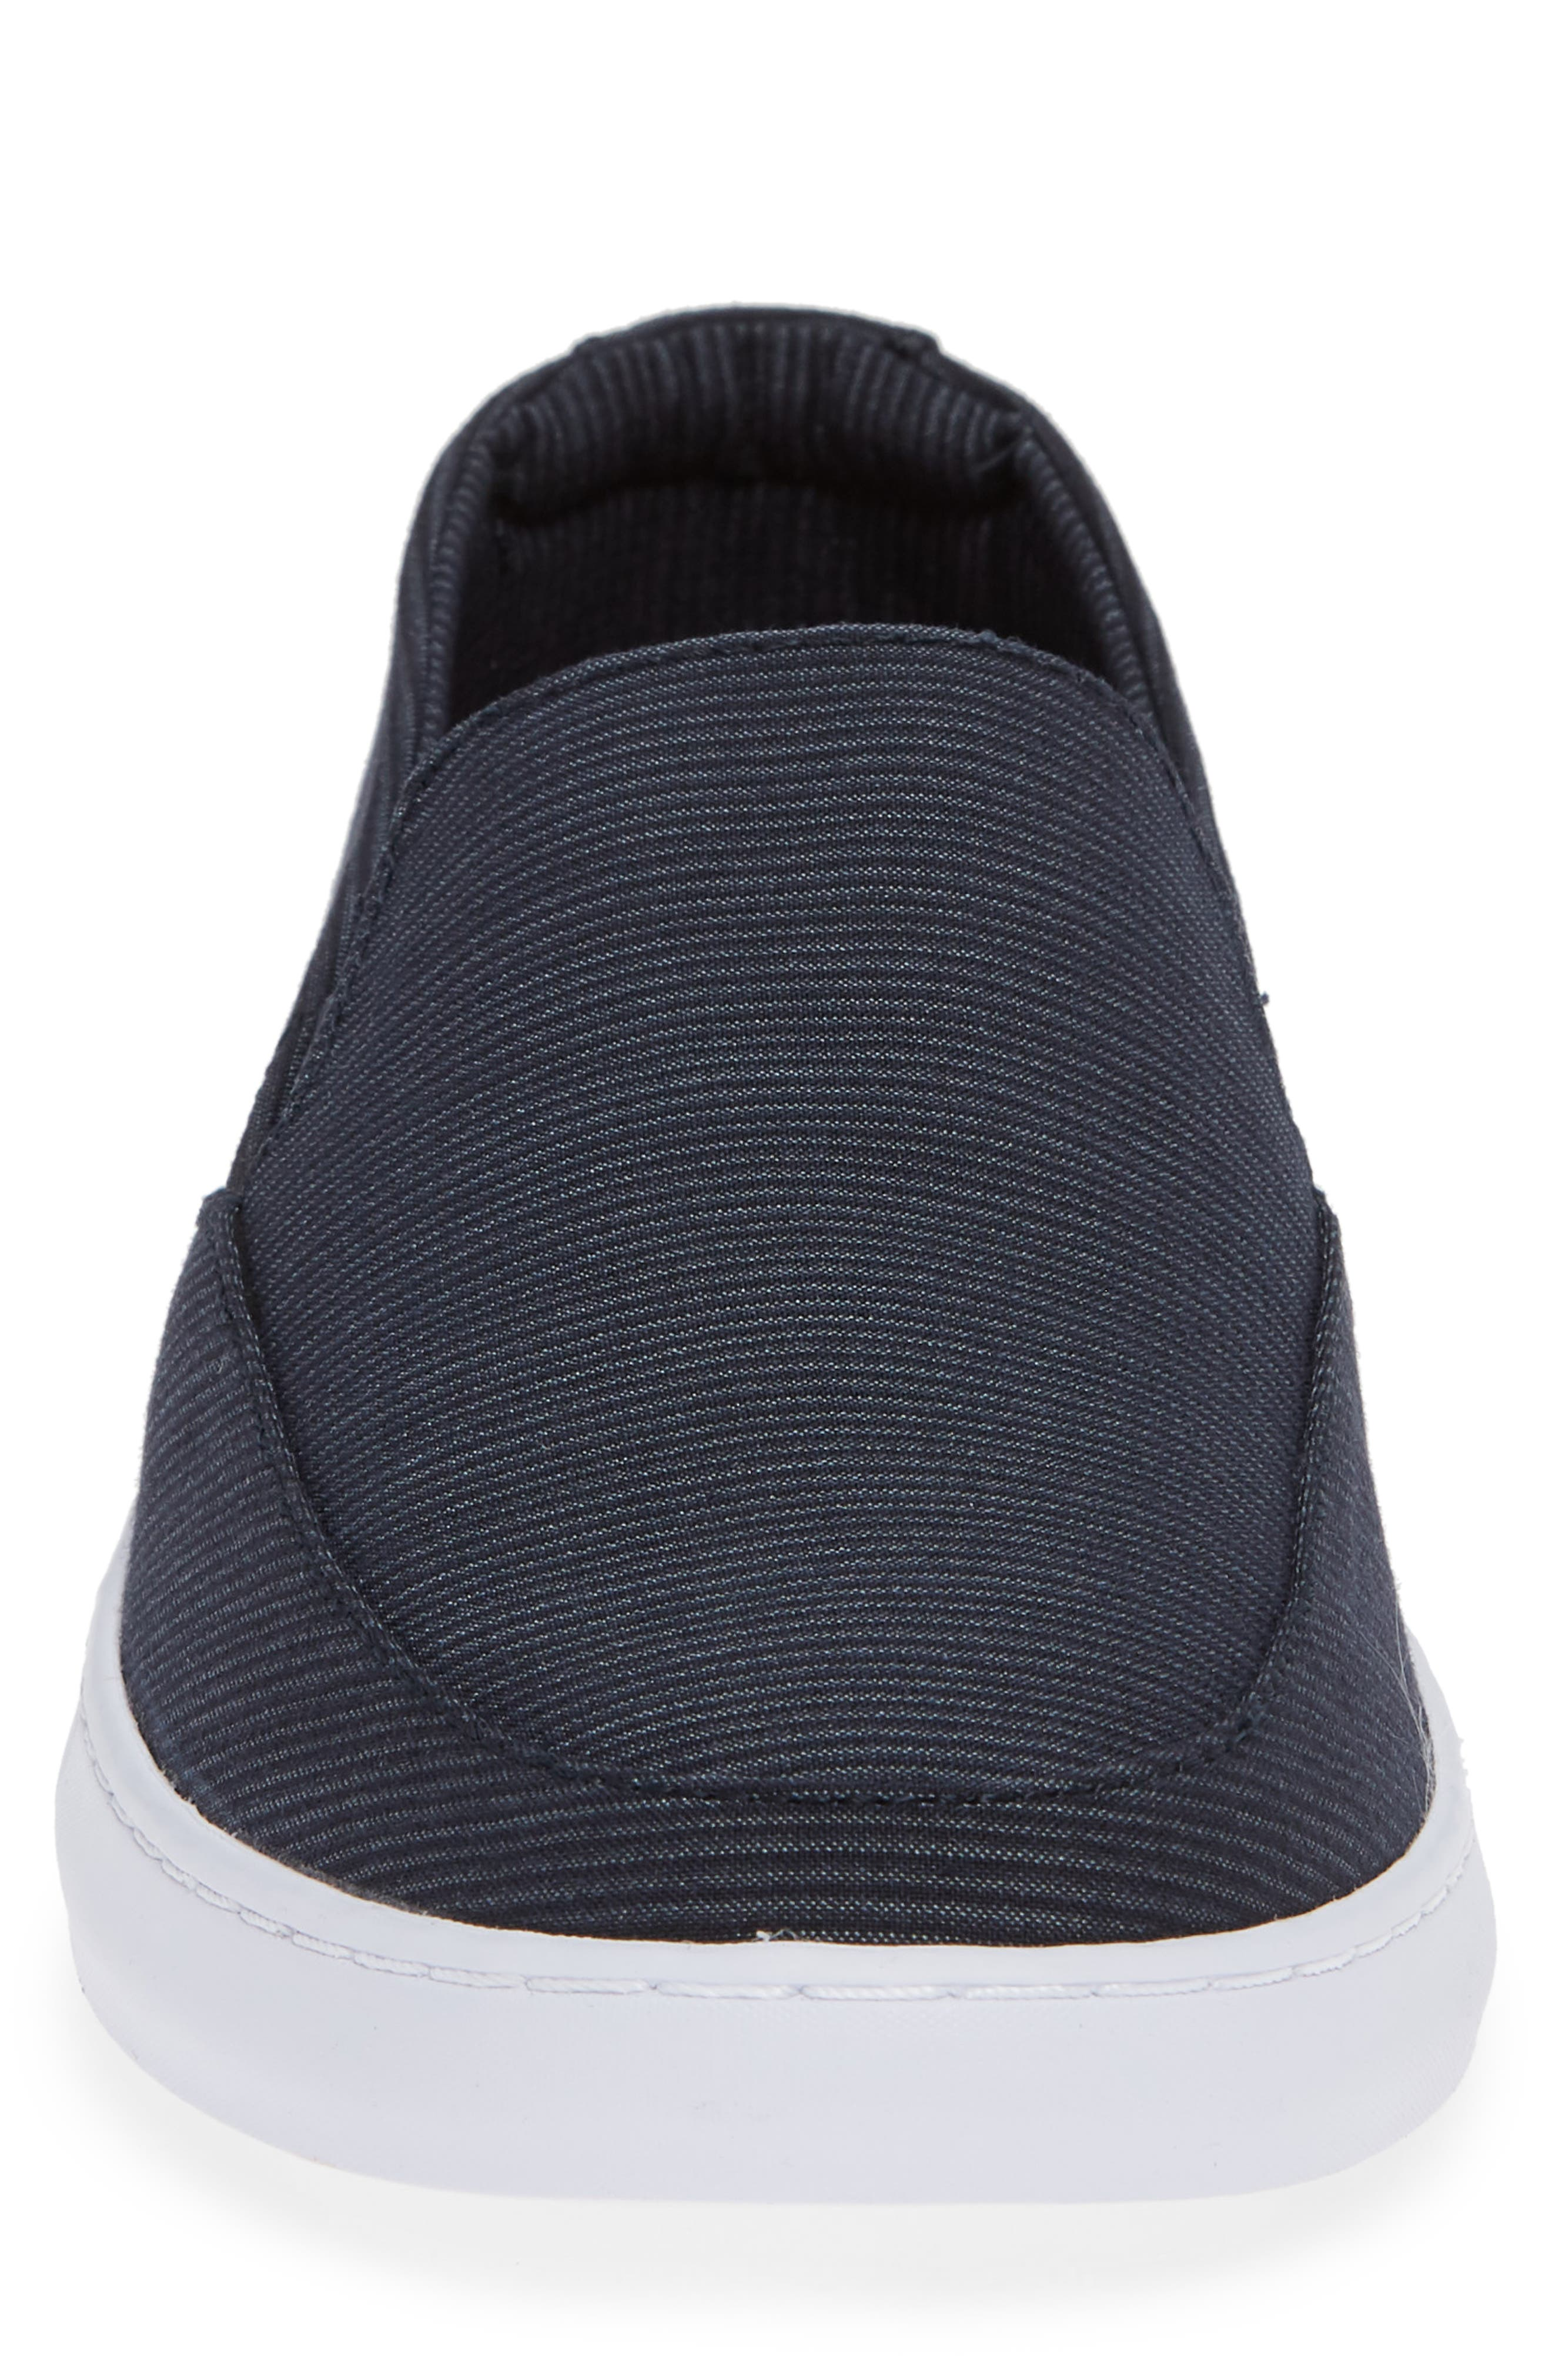 Cuater by Travis Mathew  Tracers Slip-On Sneaker,                             Alternate thumbnail 4, color,                             BLUE NIGHTS